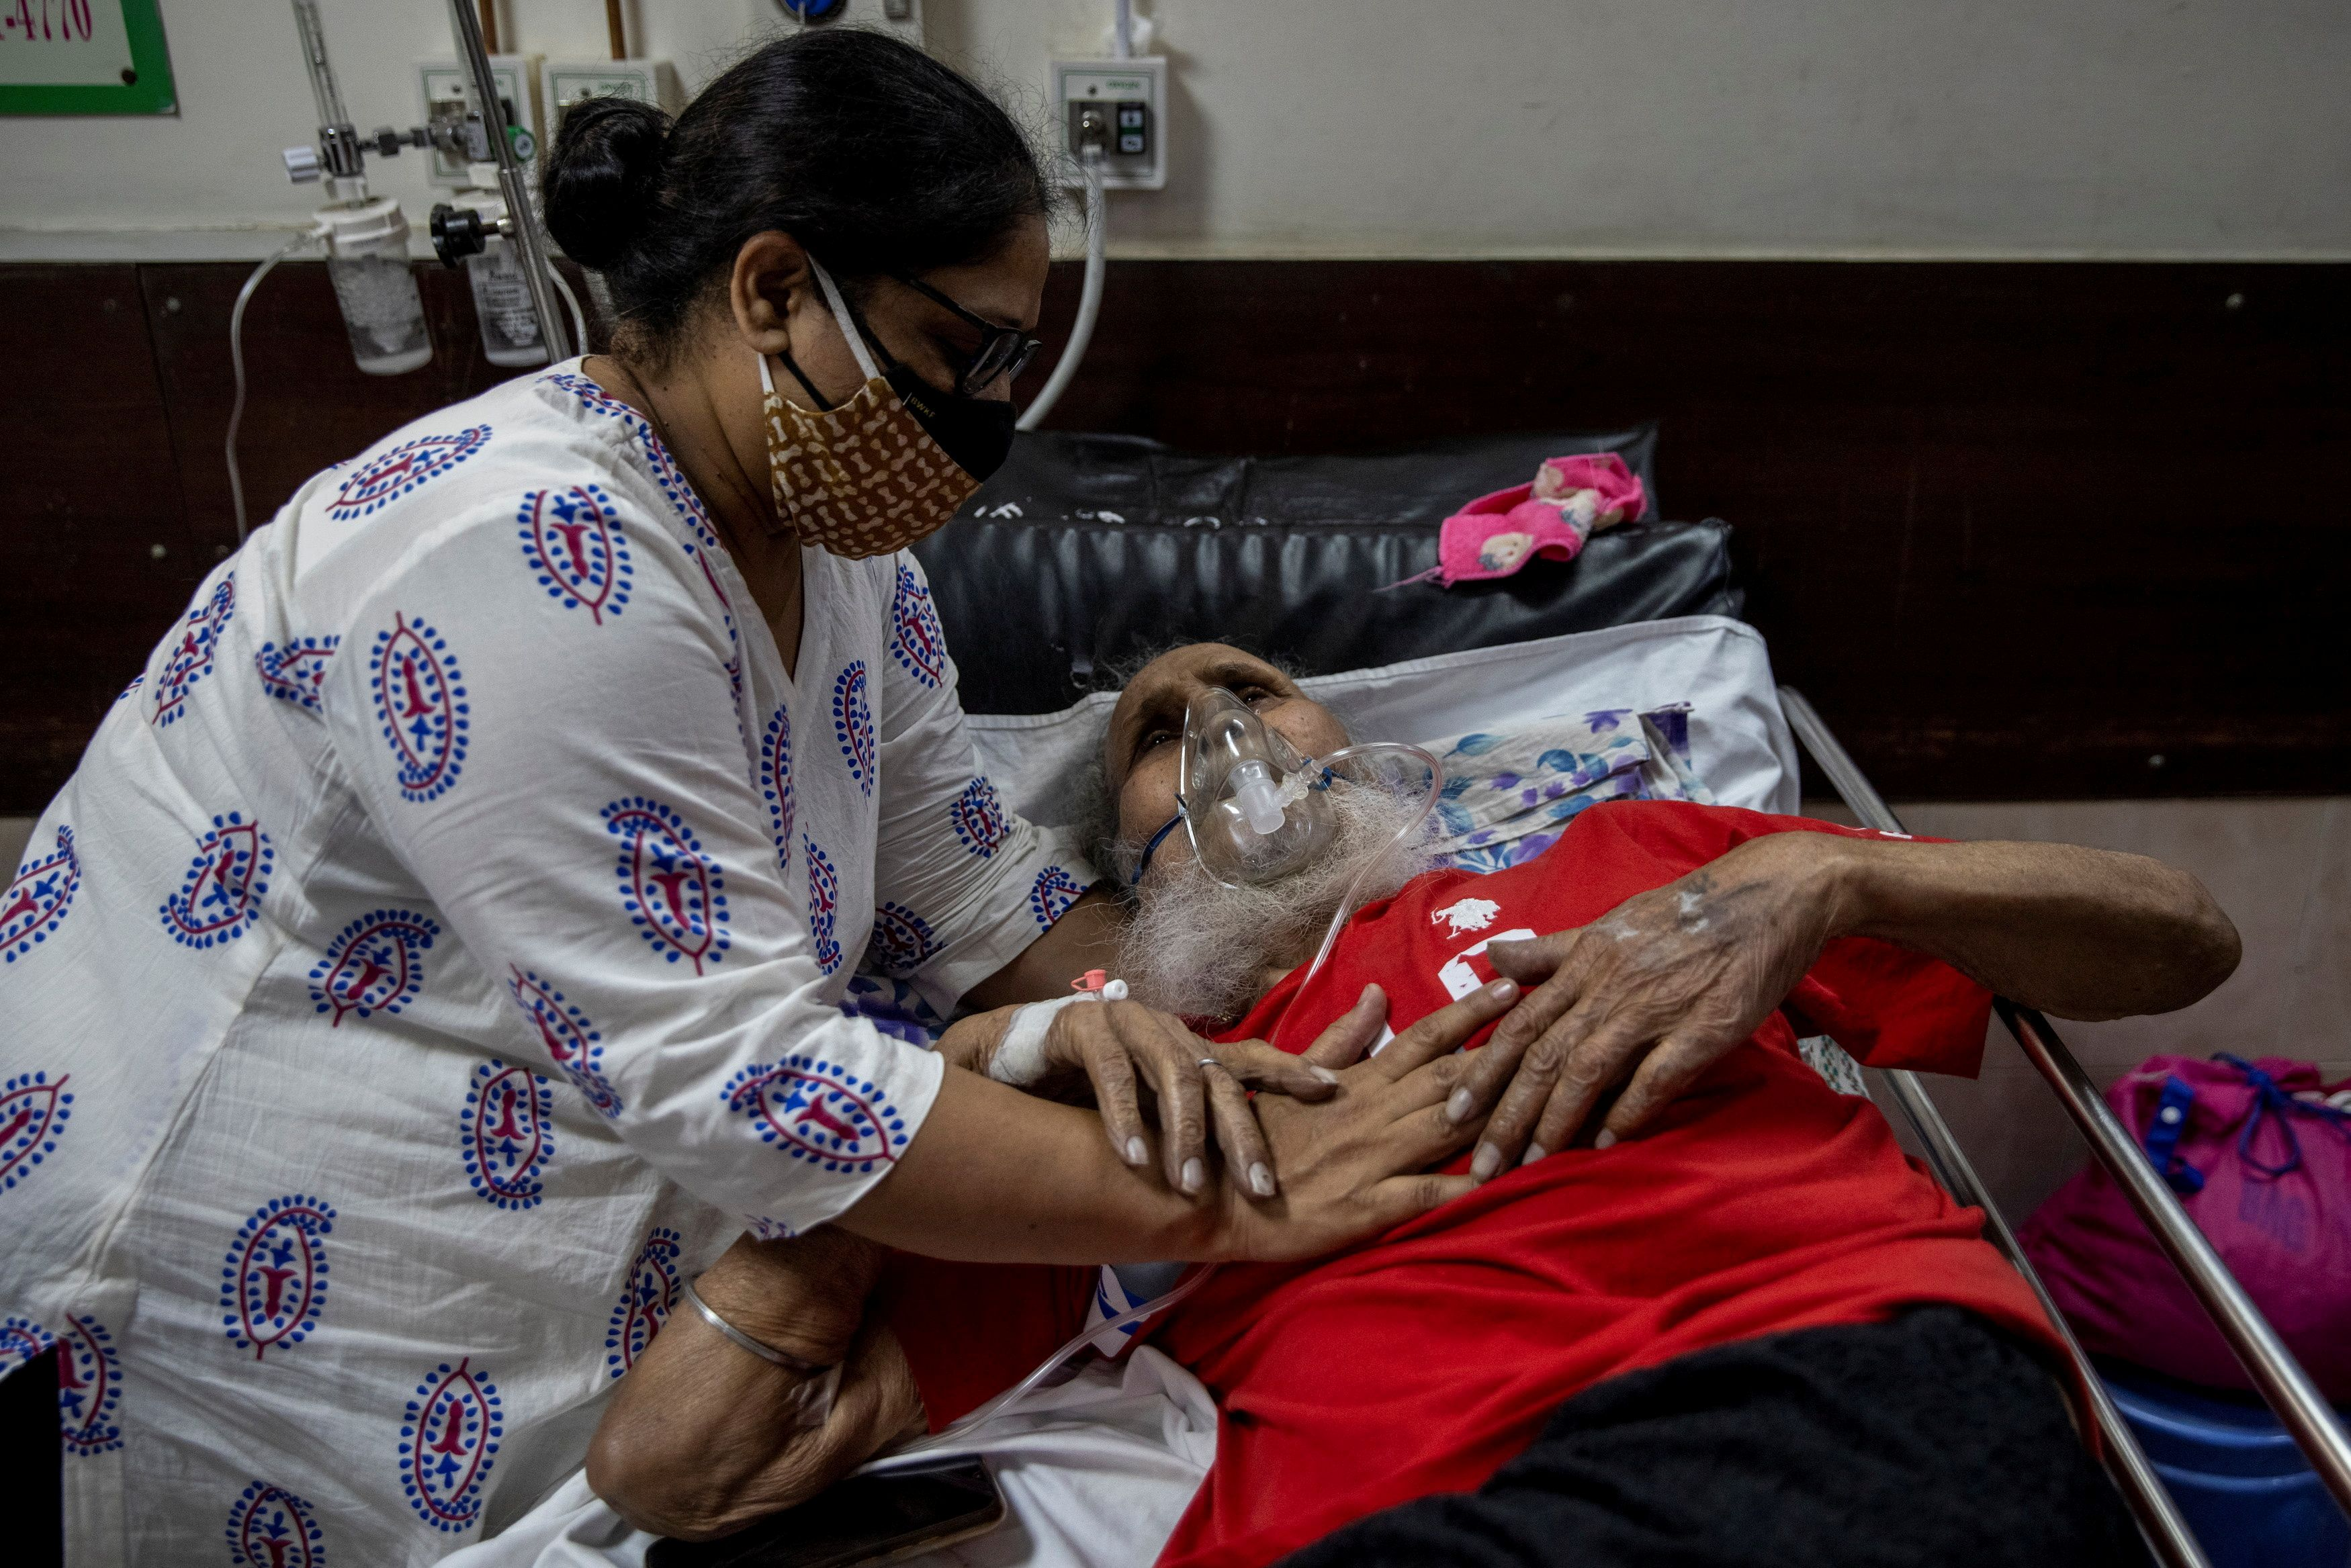 A man suffering from the coronavirus disease (COVID-19) is comforted by his daughter as he receives treatment inside the casualty ward at a hospital in New Delhi, India, May 1, 2021. REUTERS/Danish Siddiqui